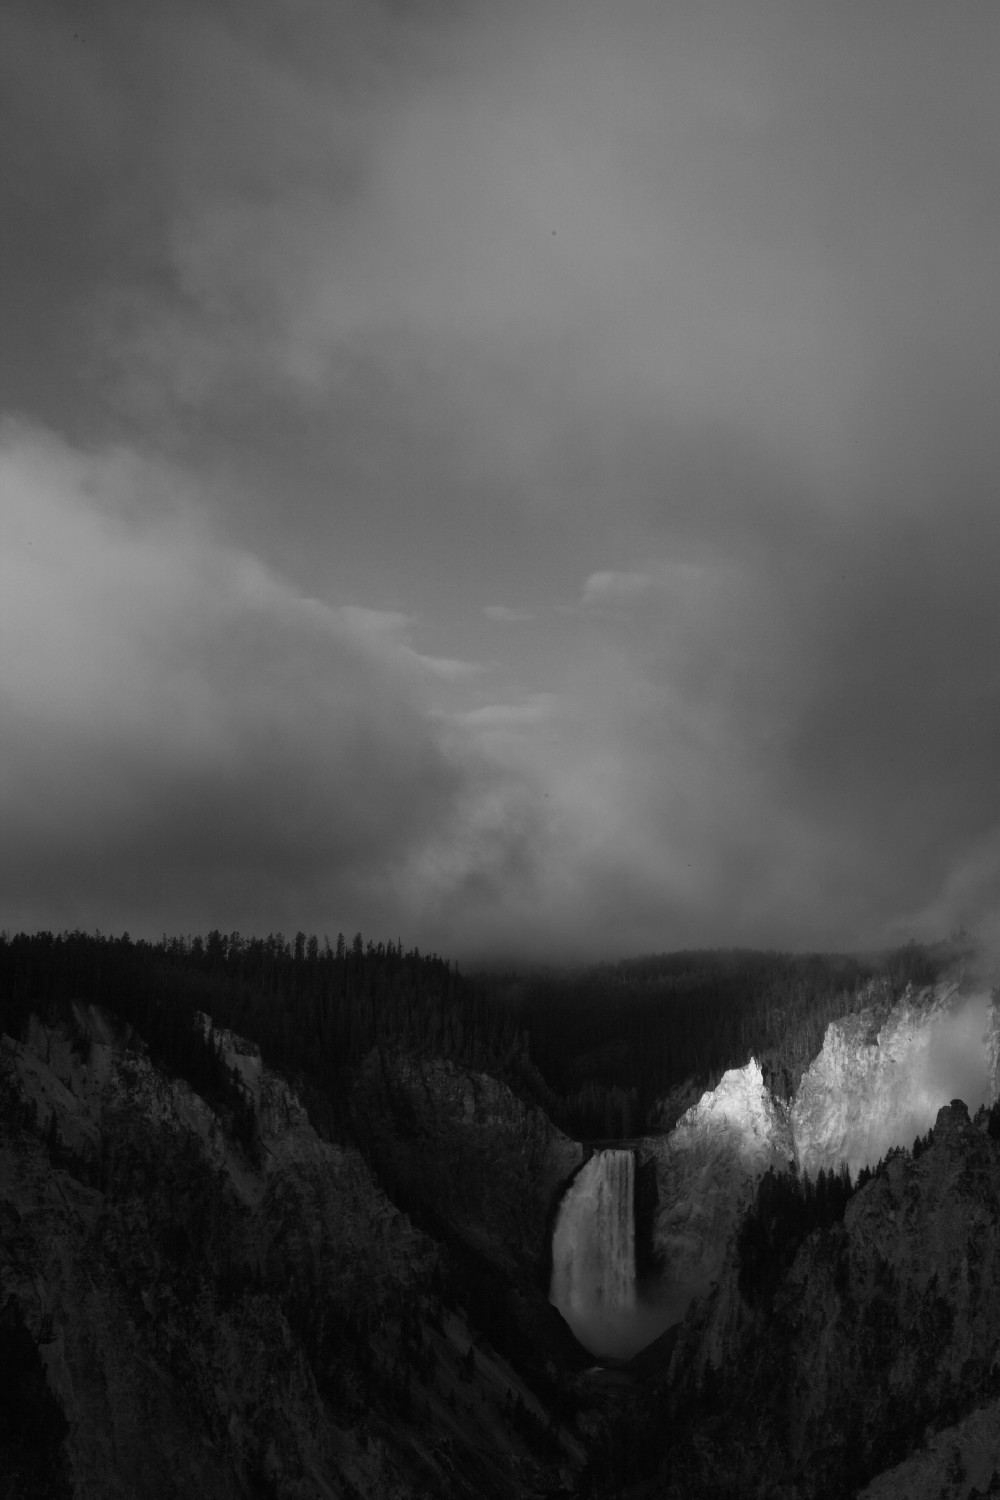 lower falls of the yellowstone river moody b w au szulecki joshua